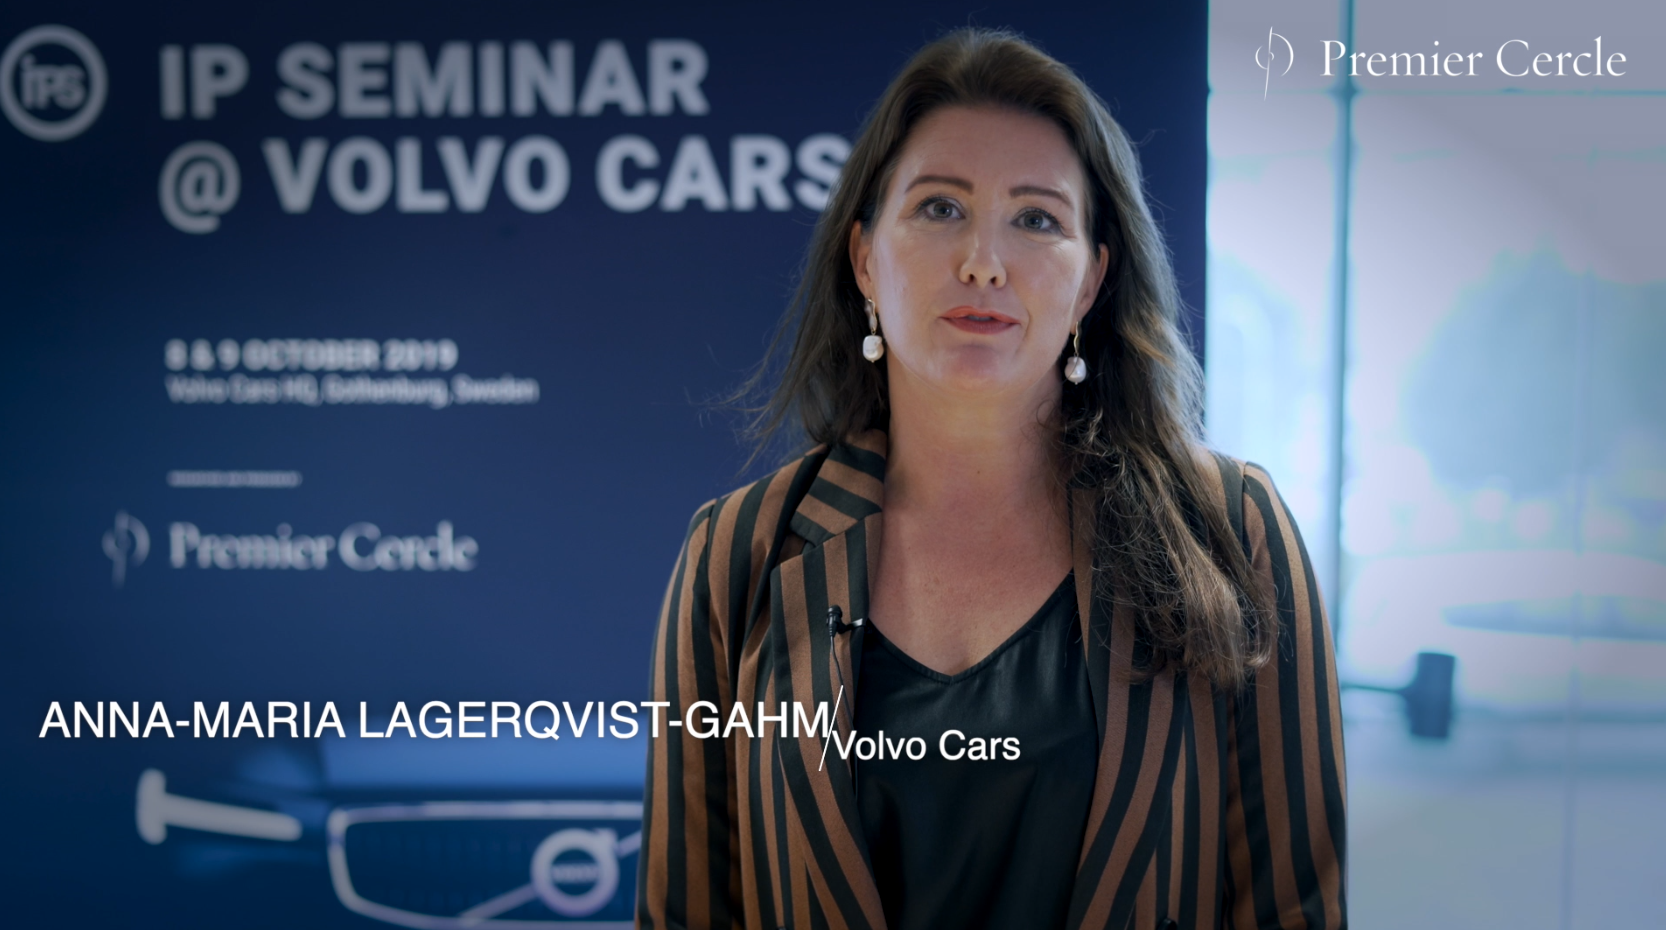 Anna-Maria Lagerqvist-Gahm from Volvo Cars interviewed by Premier Cercle